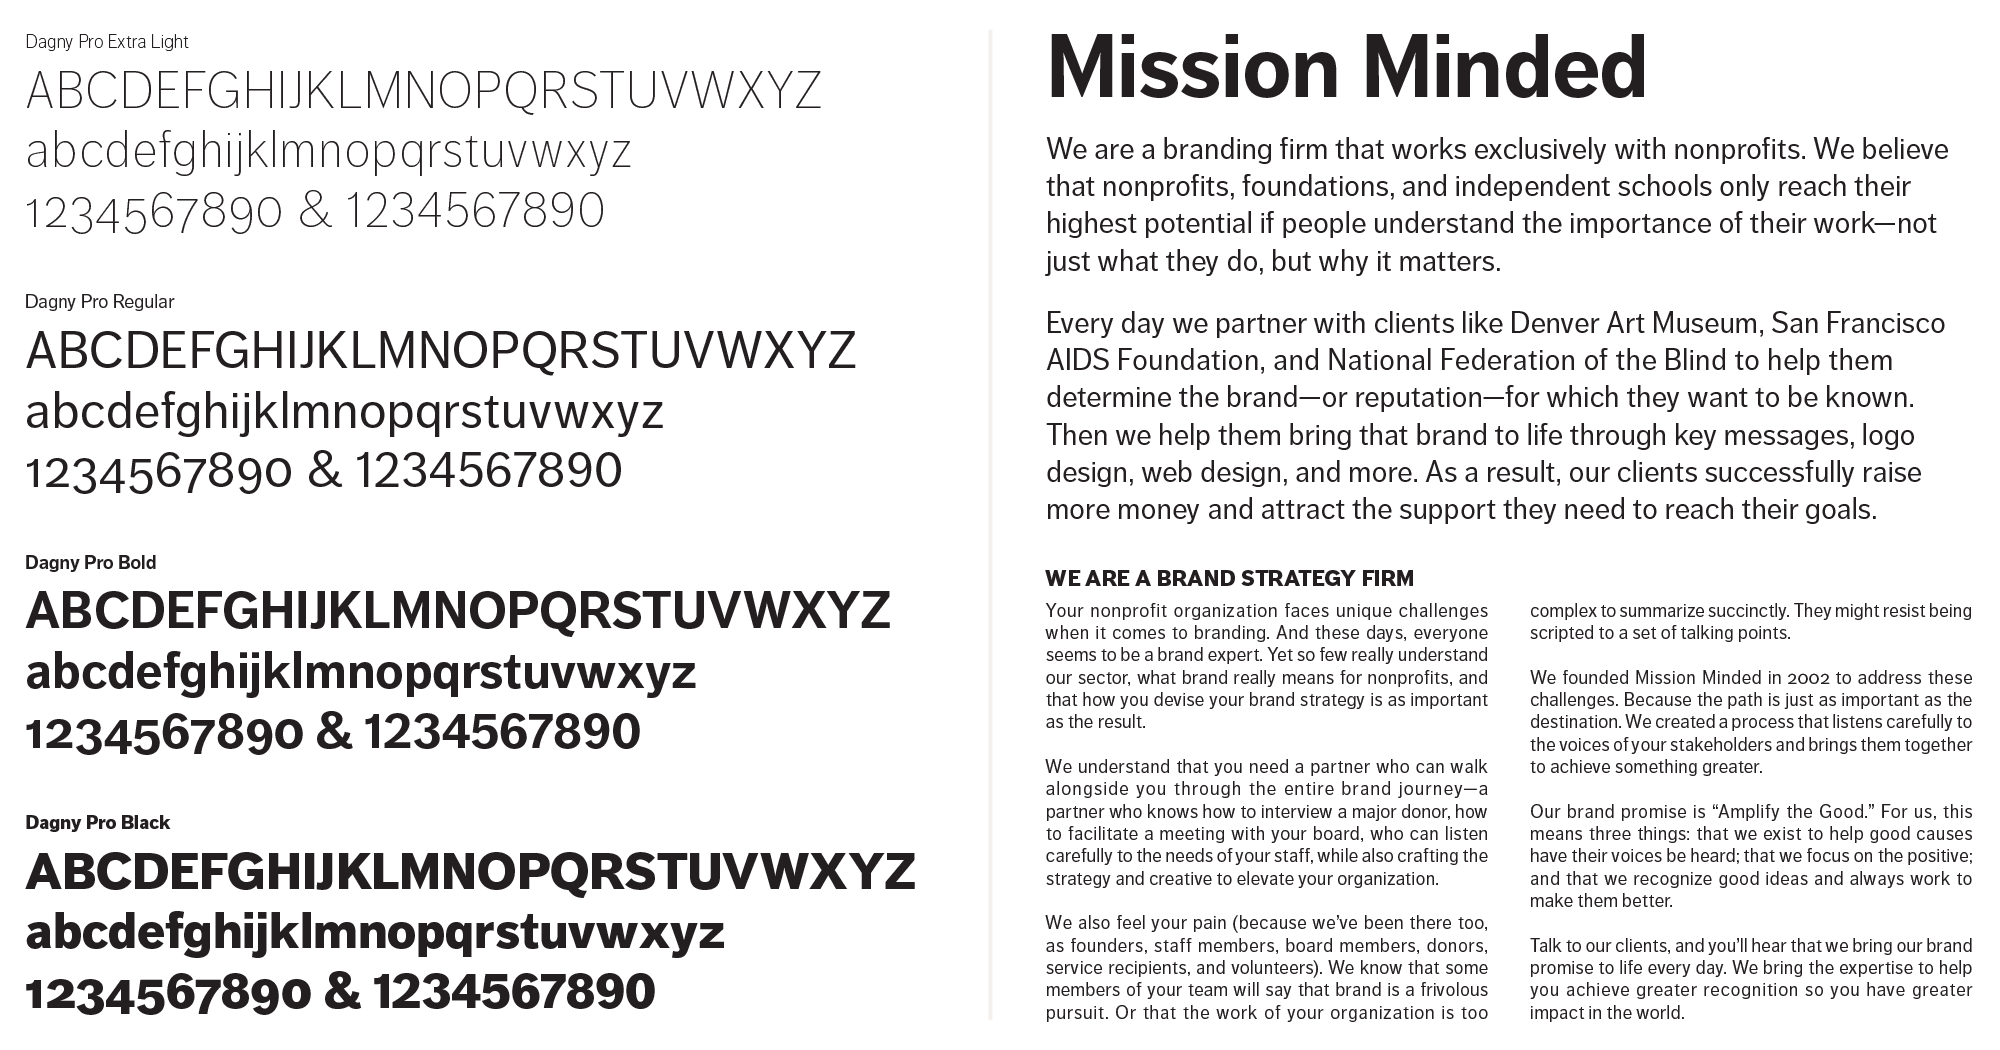 Mission Minded Typography